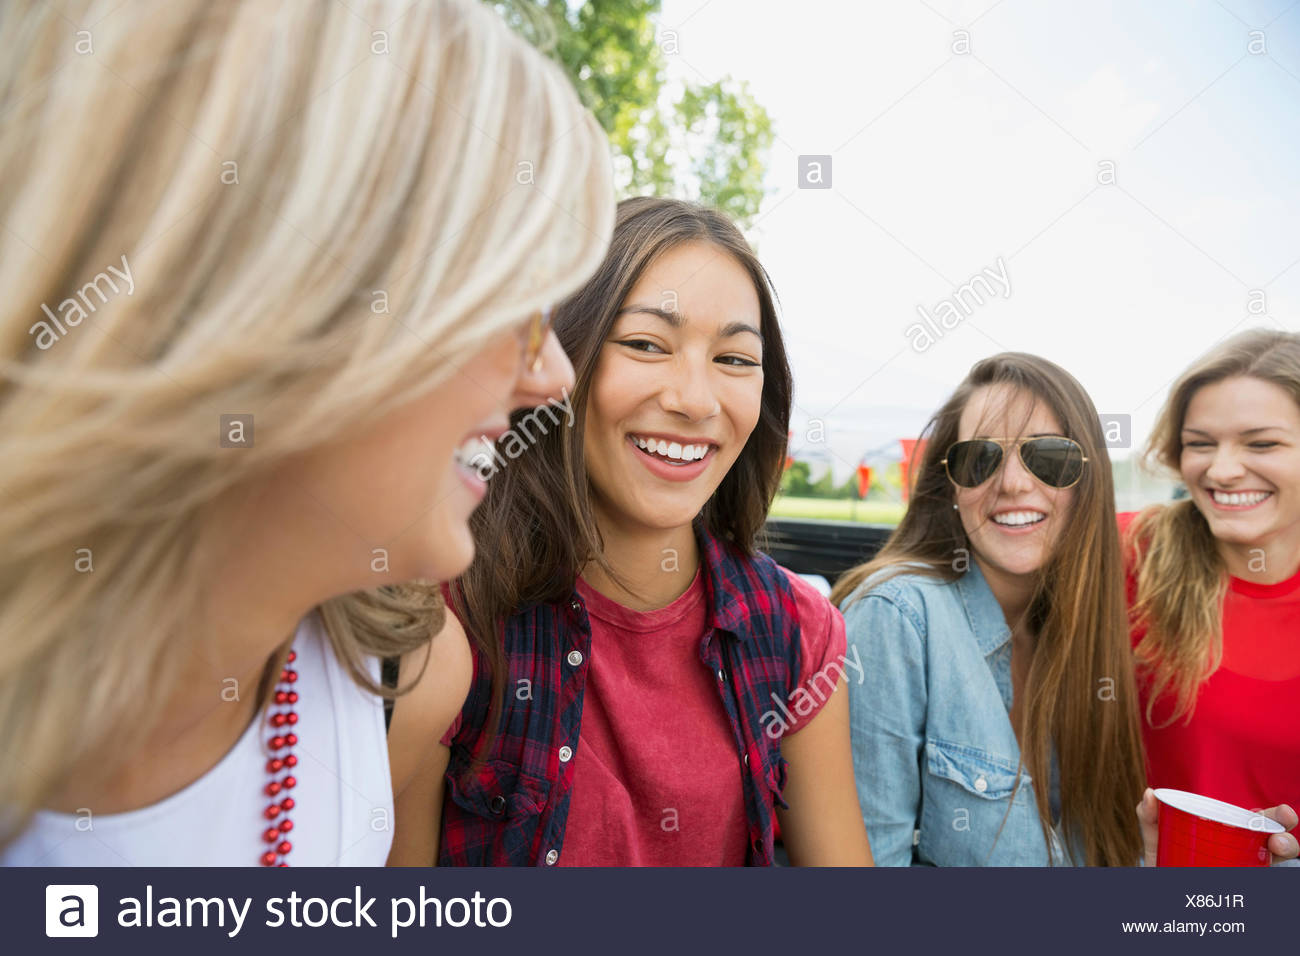 Women smiling together outdoors - Stock Image